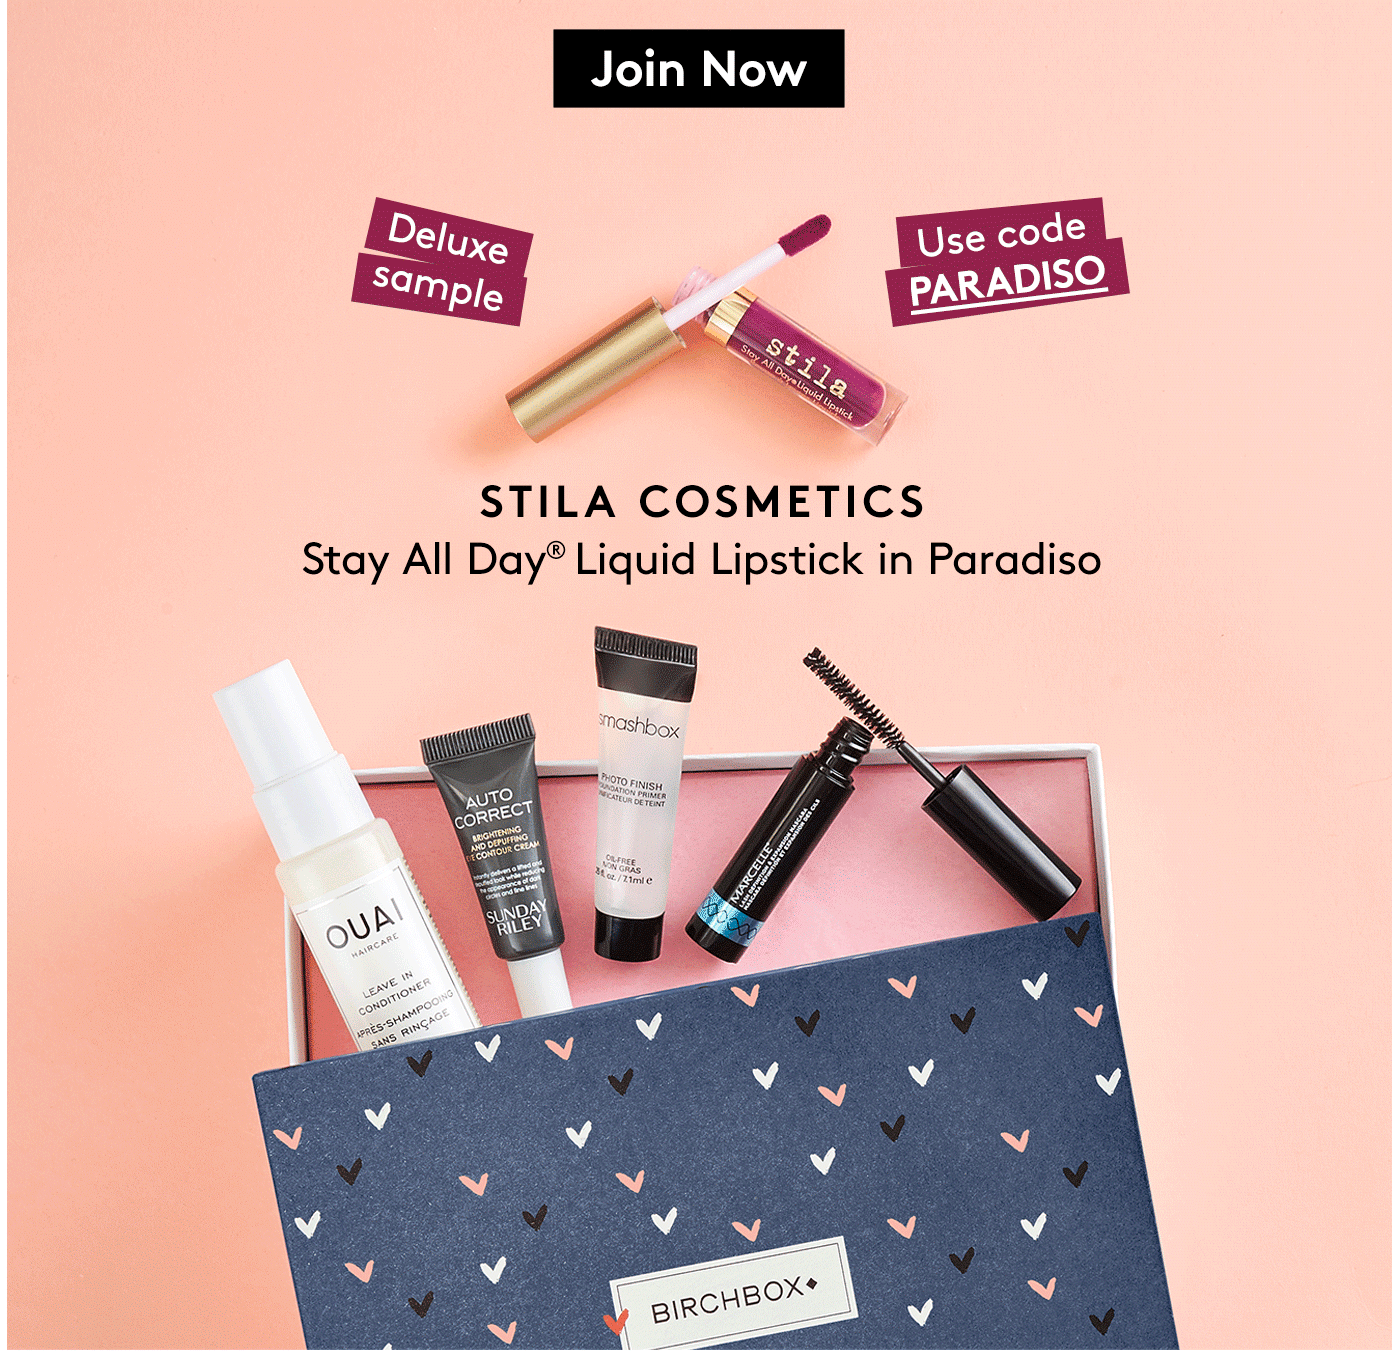 Birchbox Coupon: Get MAC or Stila Lip Sample with Subscription!